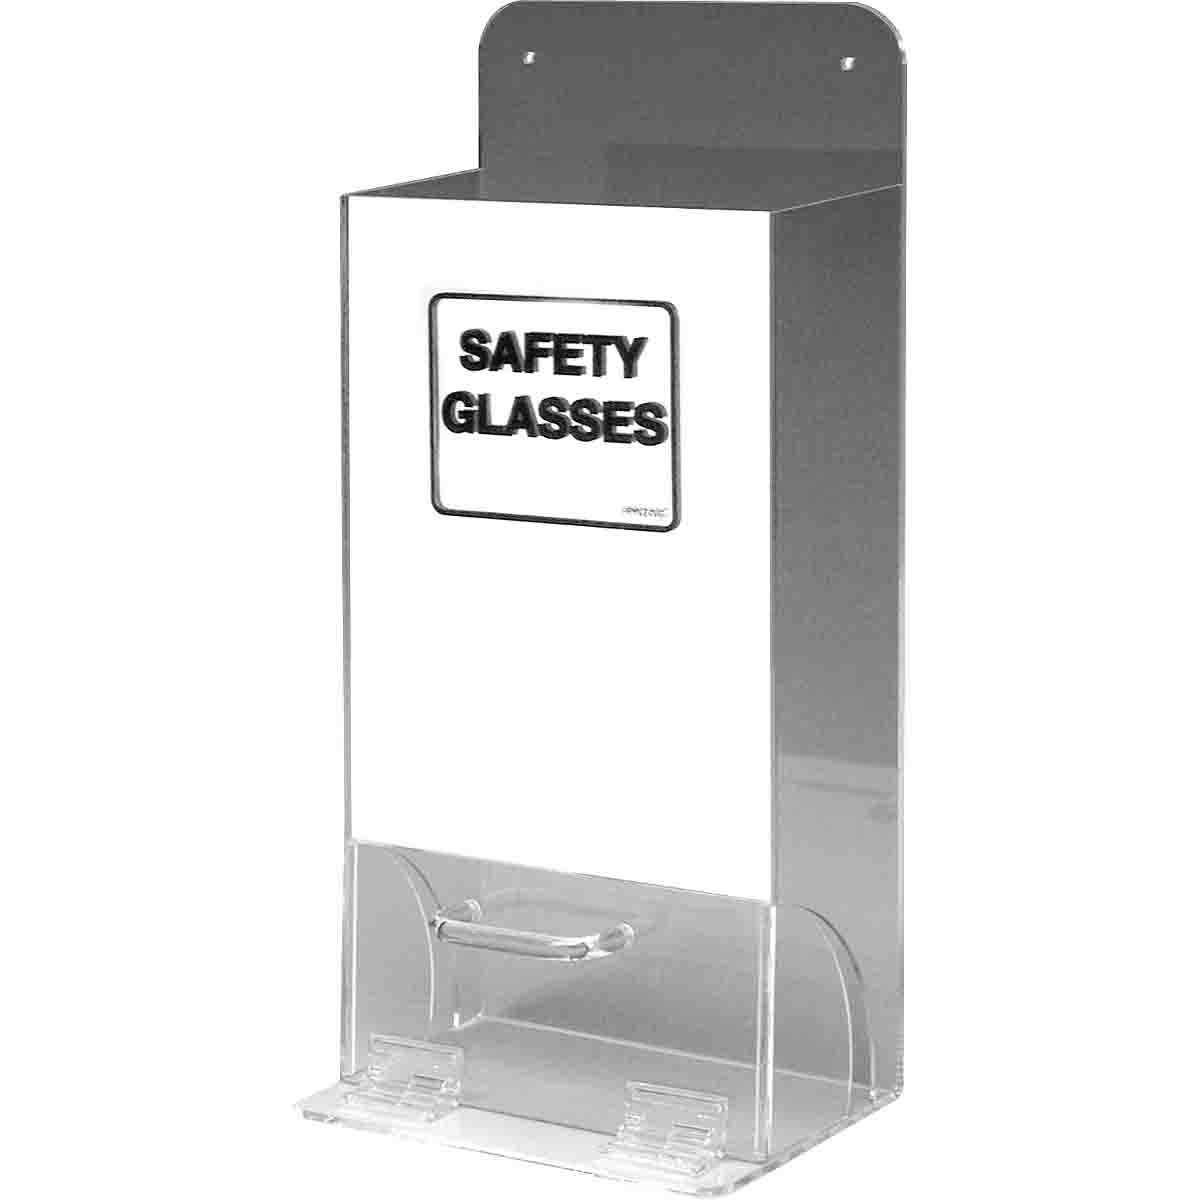 Brady® MVSDM 1-Compartment Deluxe Unfilled Visitor Spec Dispenser With Mirrored Front Panel, 20 to 25 Glasses Capacity, 18 in H x 8 in W x 4 in D, Acrylic, Wall Mount